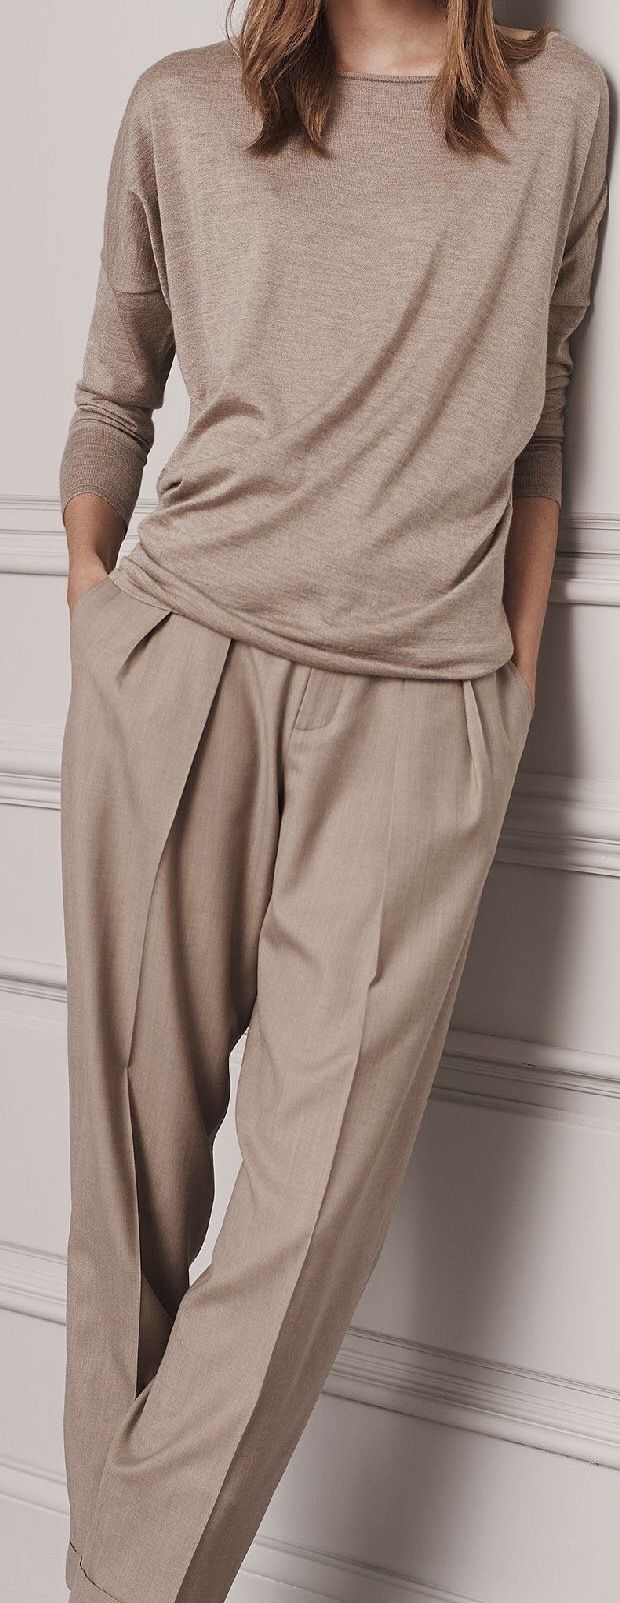 Tan pleated trousers with matching sweater - Ralph Lauren